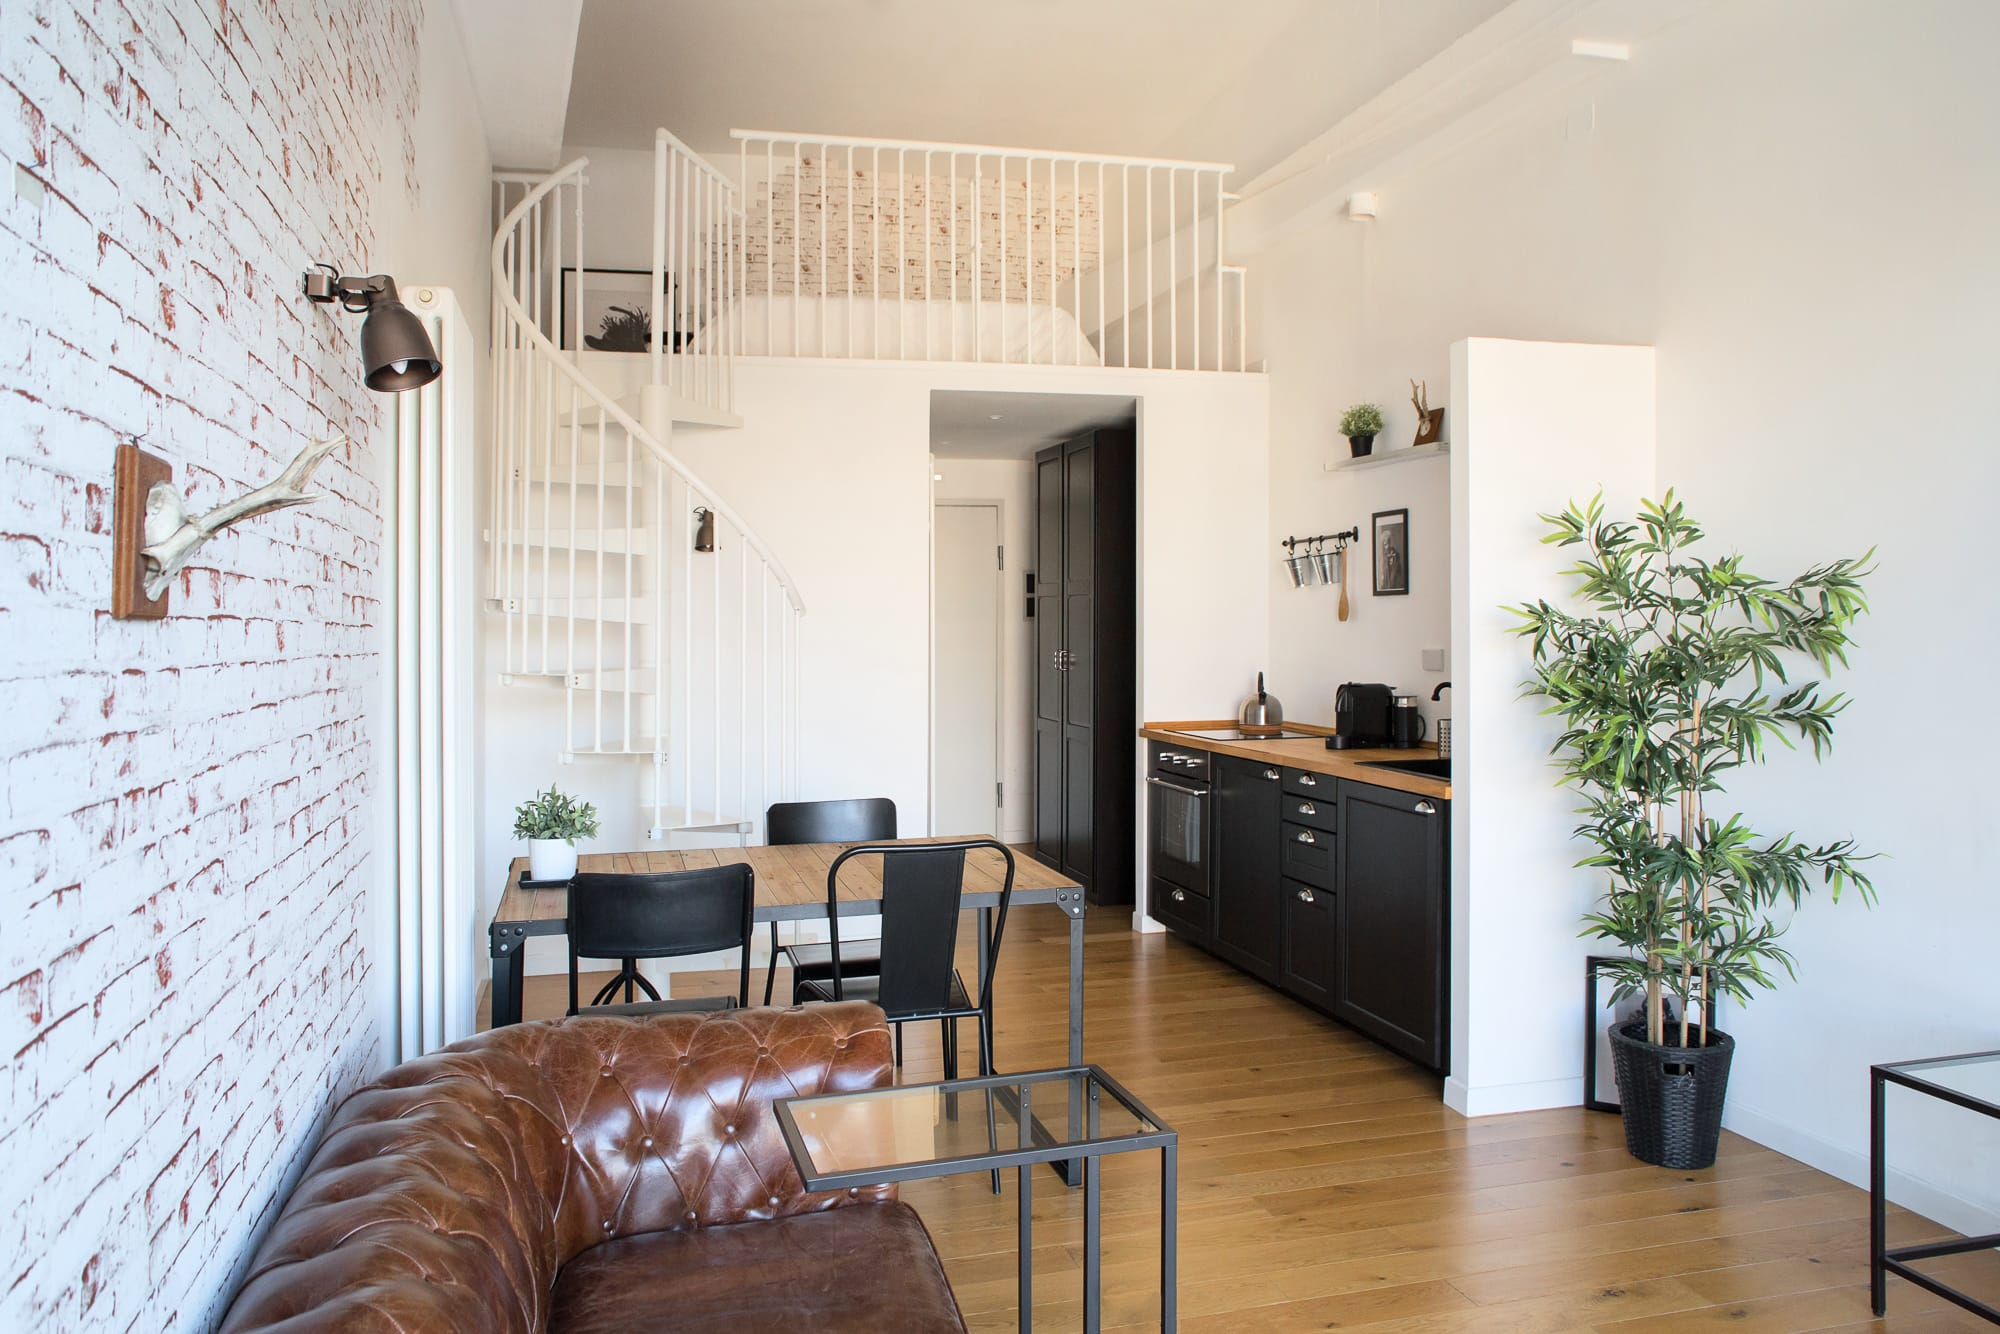 Industrial living room with black kitchen and metal frame dining table. The apartment is divided into two floors, and there are some white stairs on the left side close to a vintage leather couch.